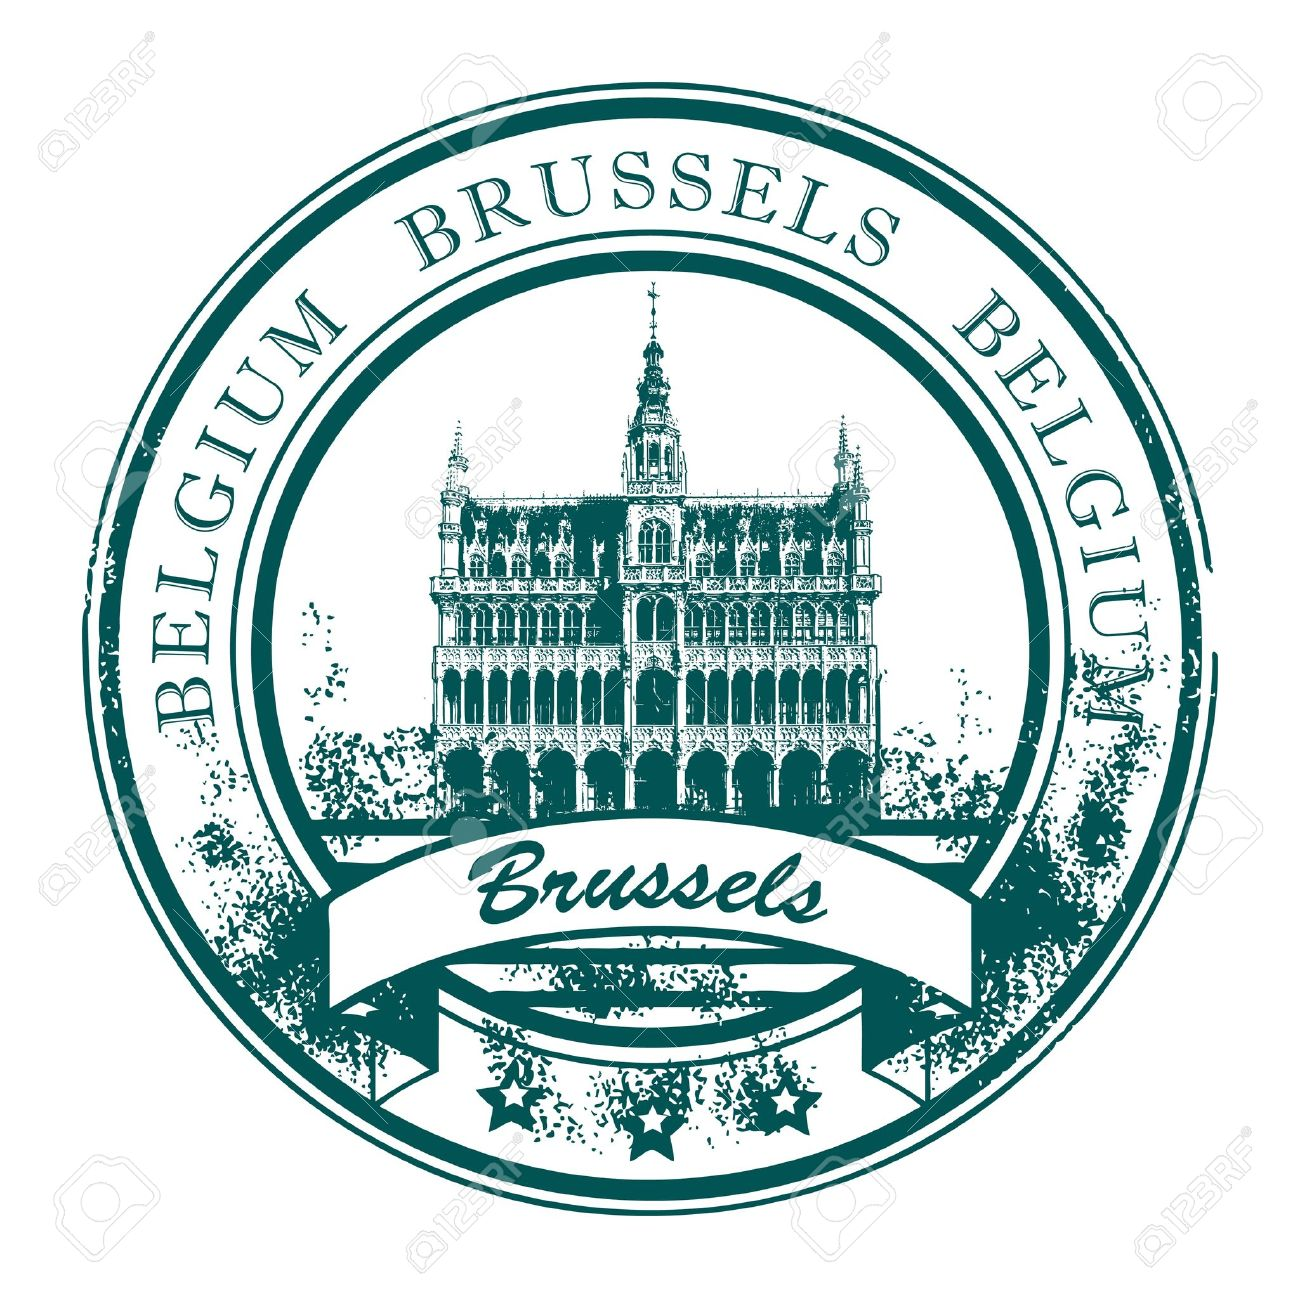 Grunge rubber stamp with the word Brussels, Belgium inside Stock Vector - 13946318